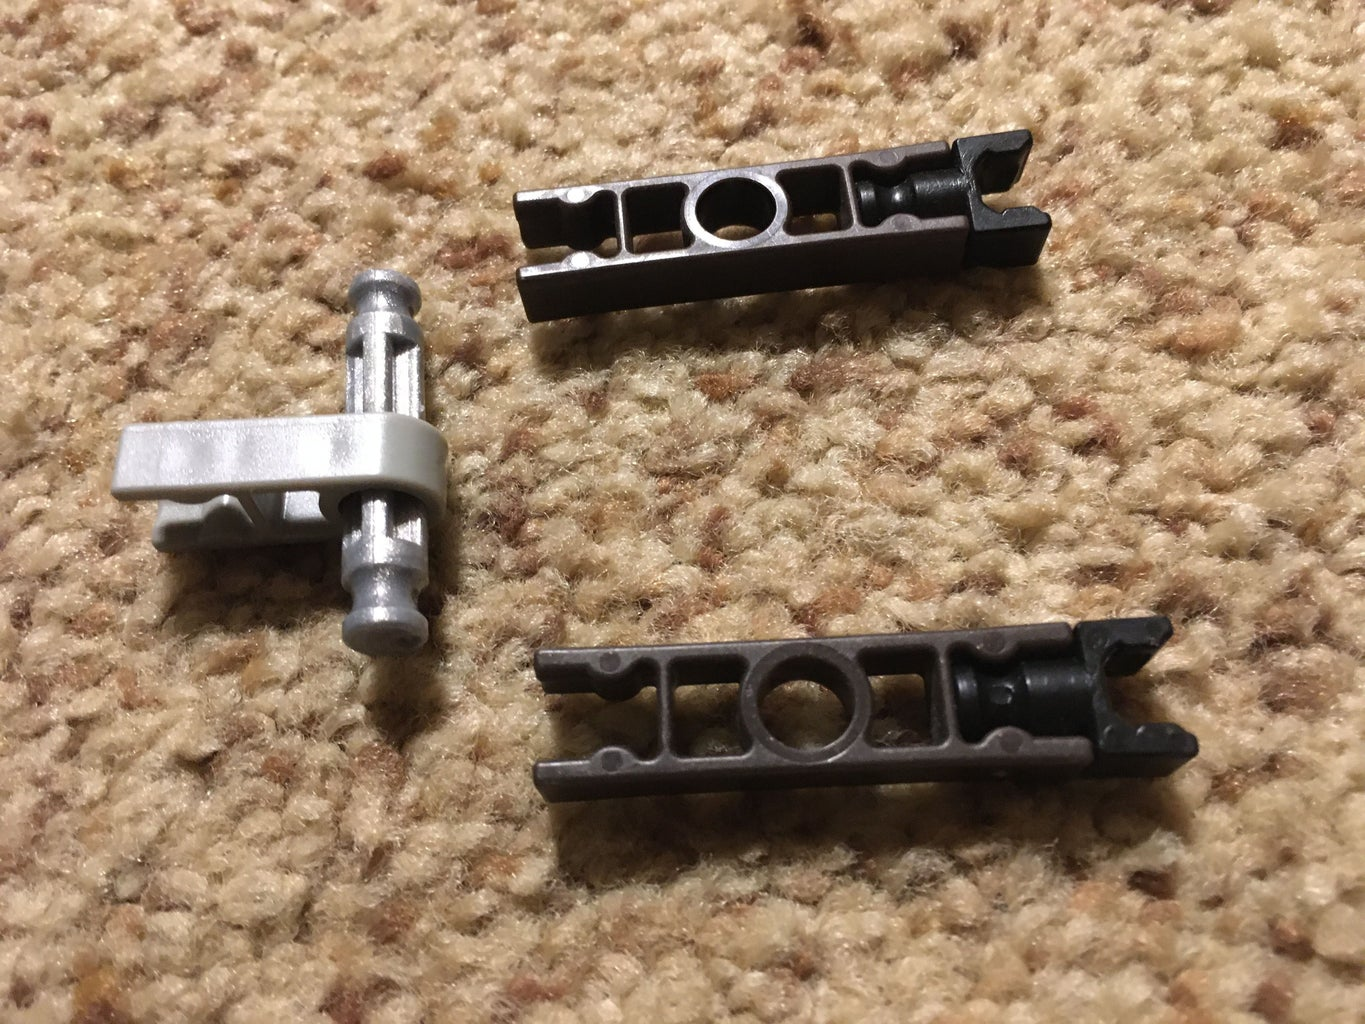 The Trigger Mechanism and Rear Hook